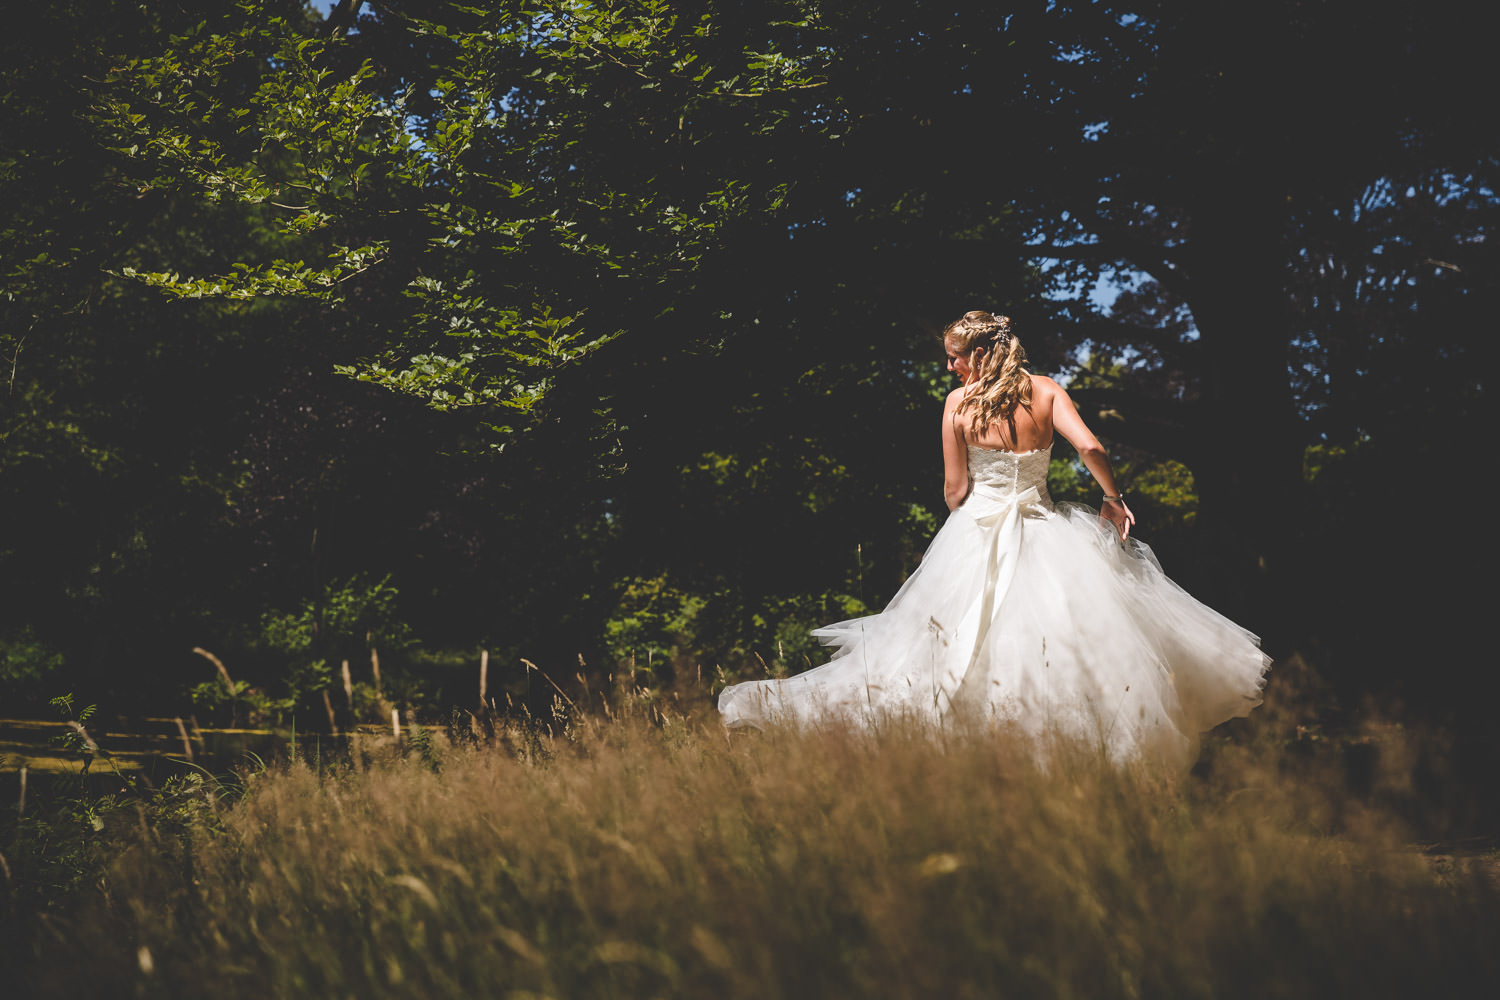 wedding photography - by Michael Basten Fotografie